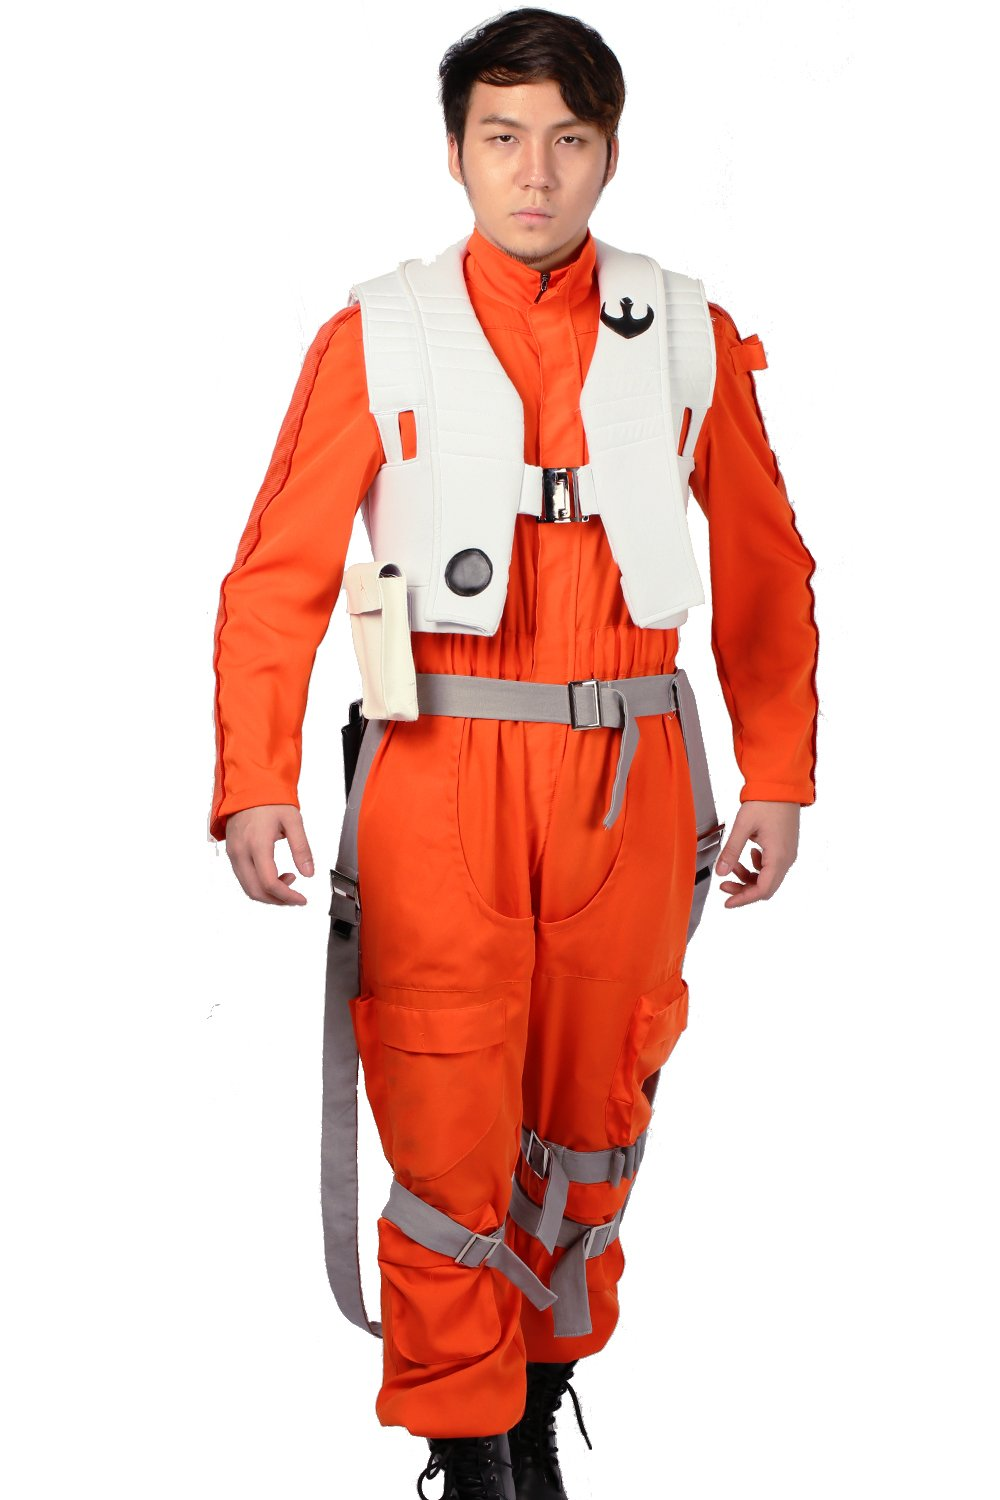 XCOSER Poe Dameron Costume Deluxe Orange Jumpsuit Suit Halloween Cosplay Outfit XL by xcoser (Image #2)